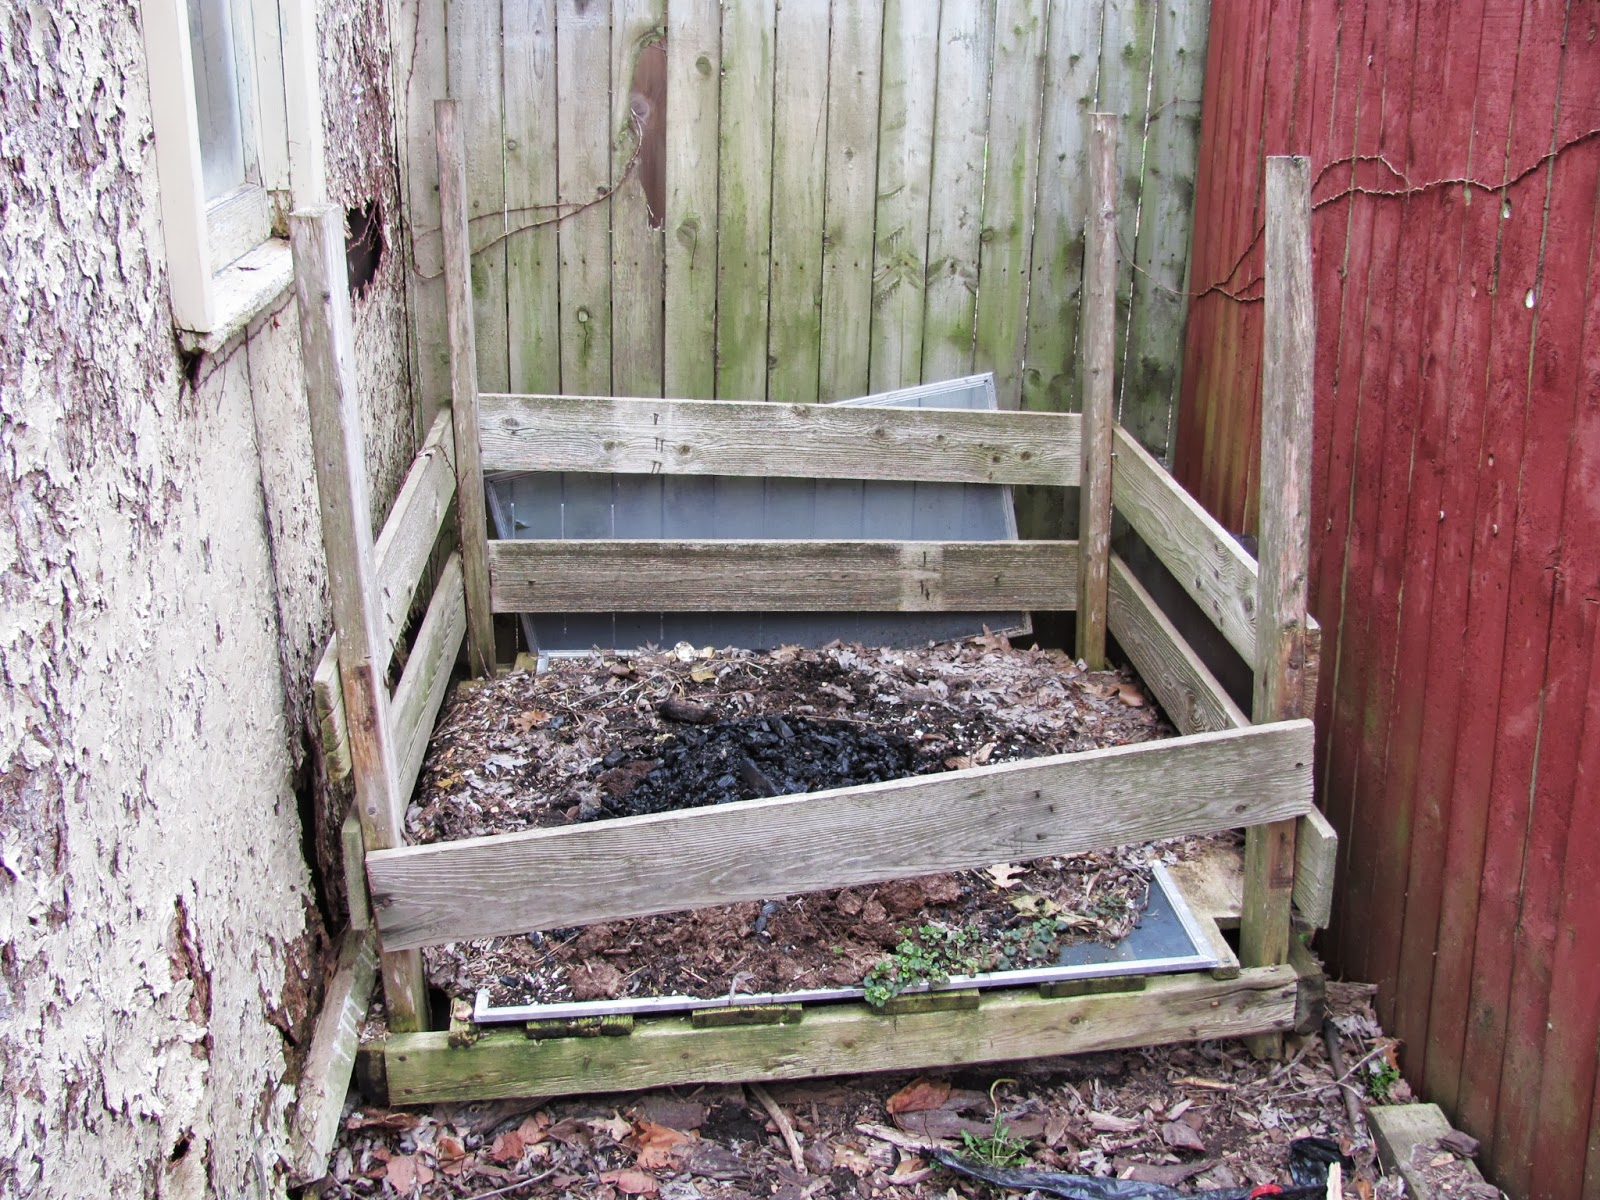 A rickety homemade compost box sits in a gap between a shed and a fence